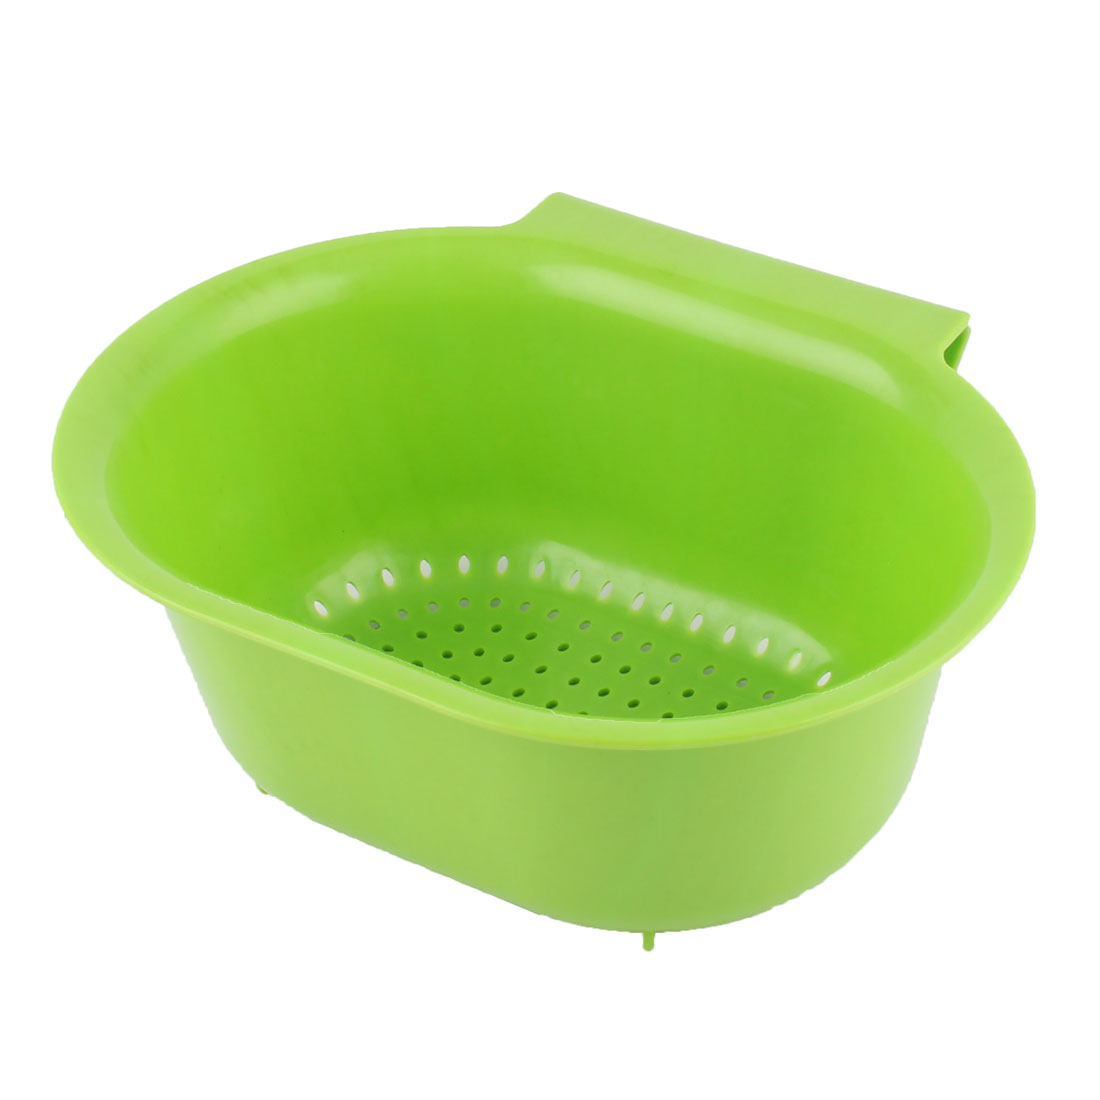 Home Kitchenware Plastic Hollow Out Fruit Vegetable Washing Tool Basket Strainer Green